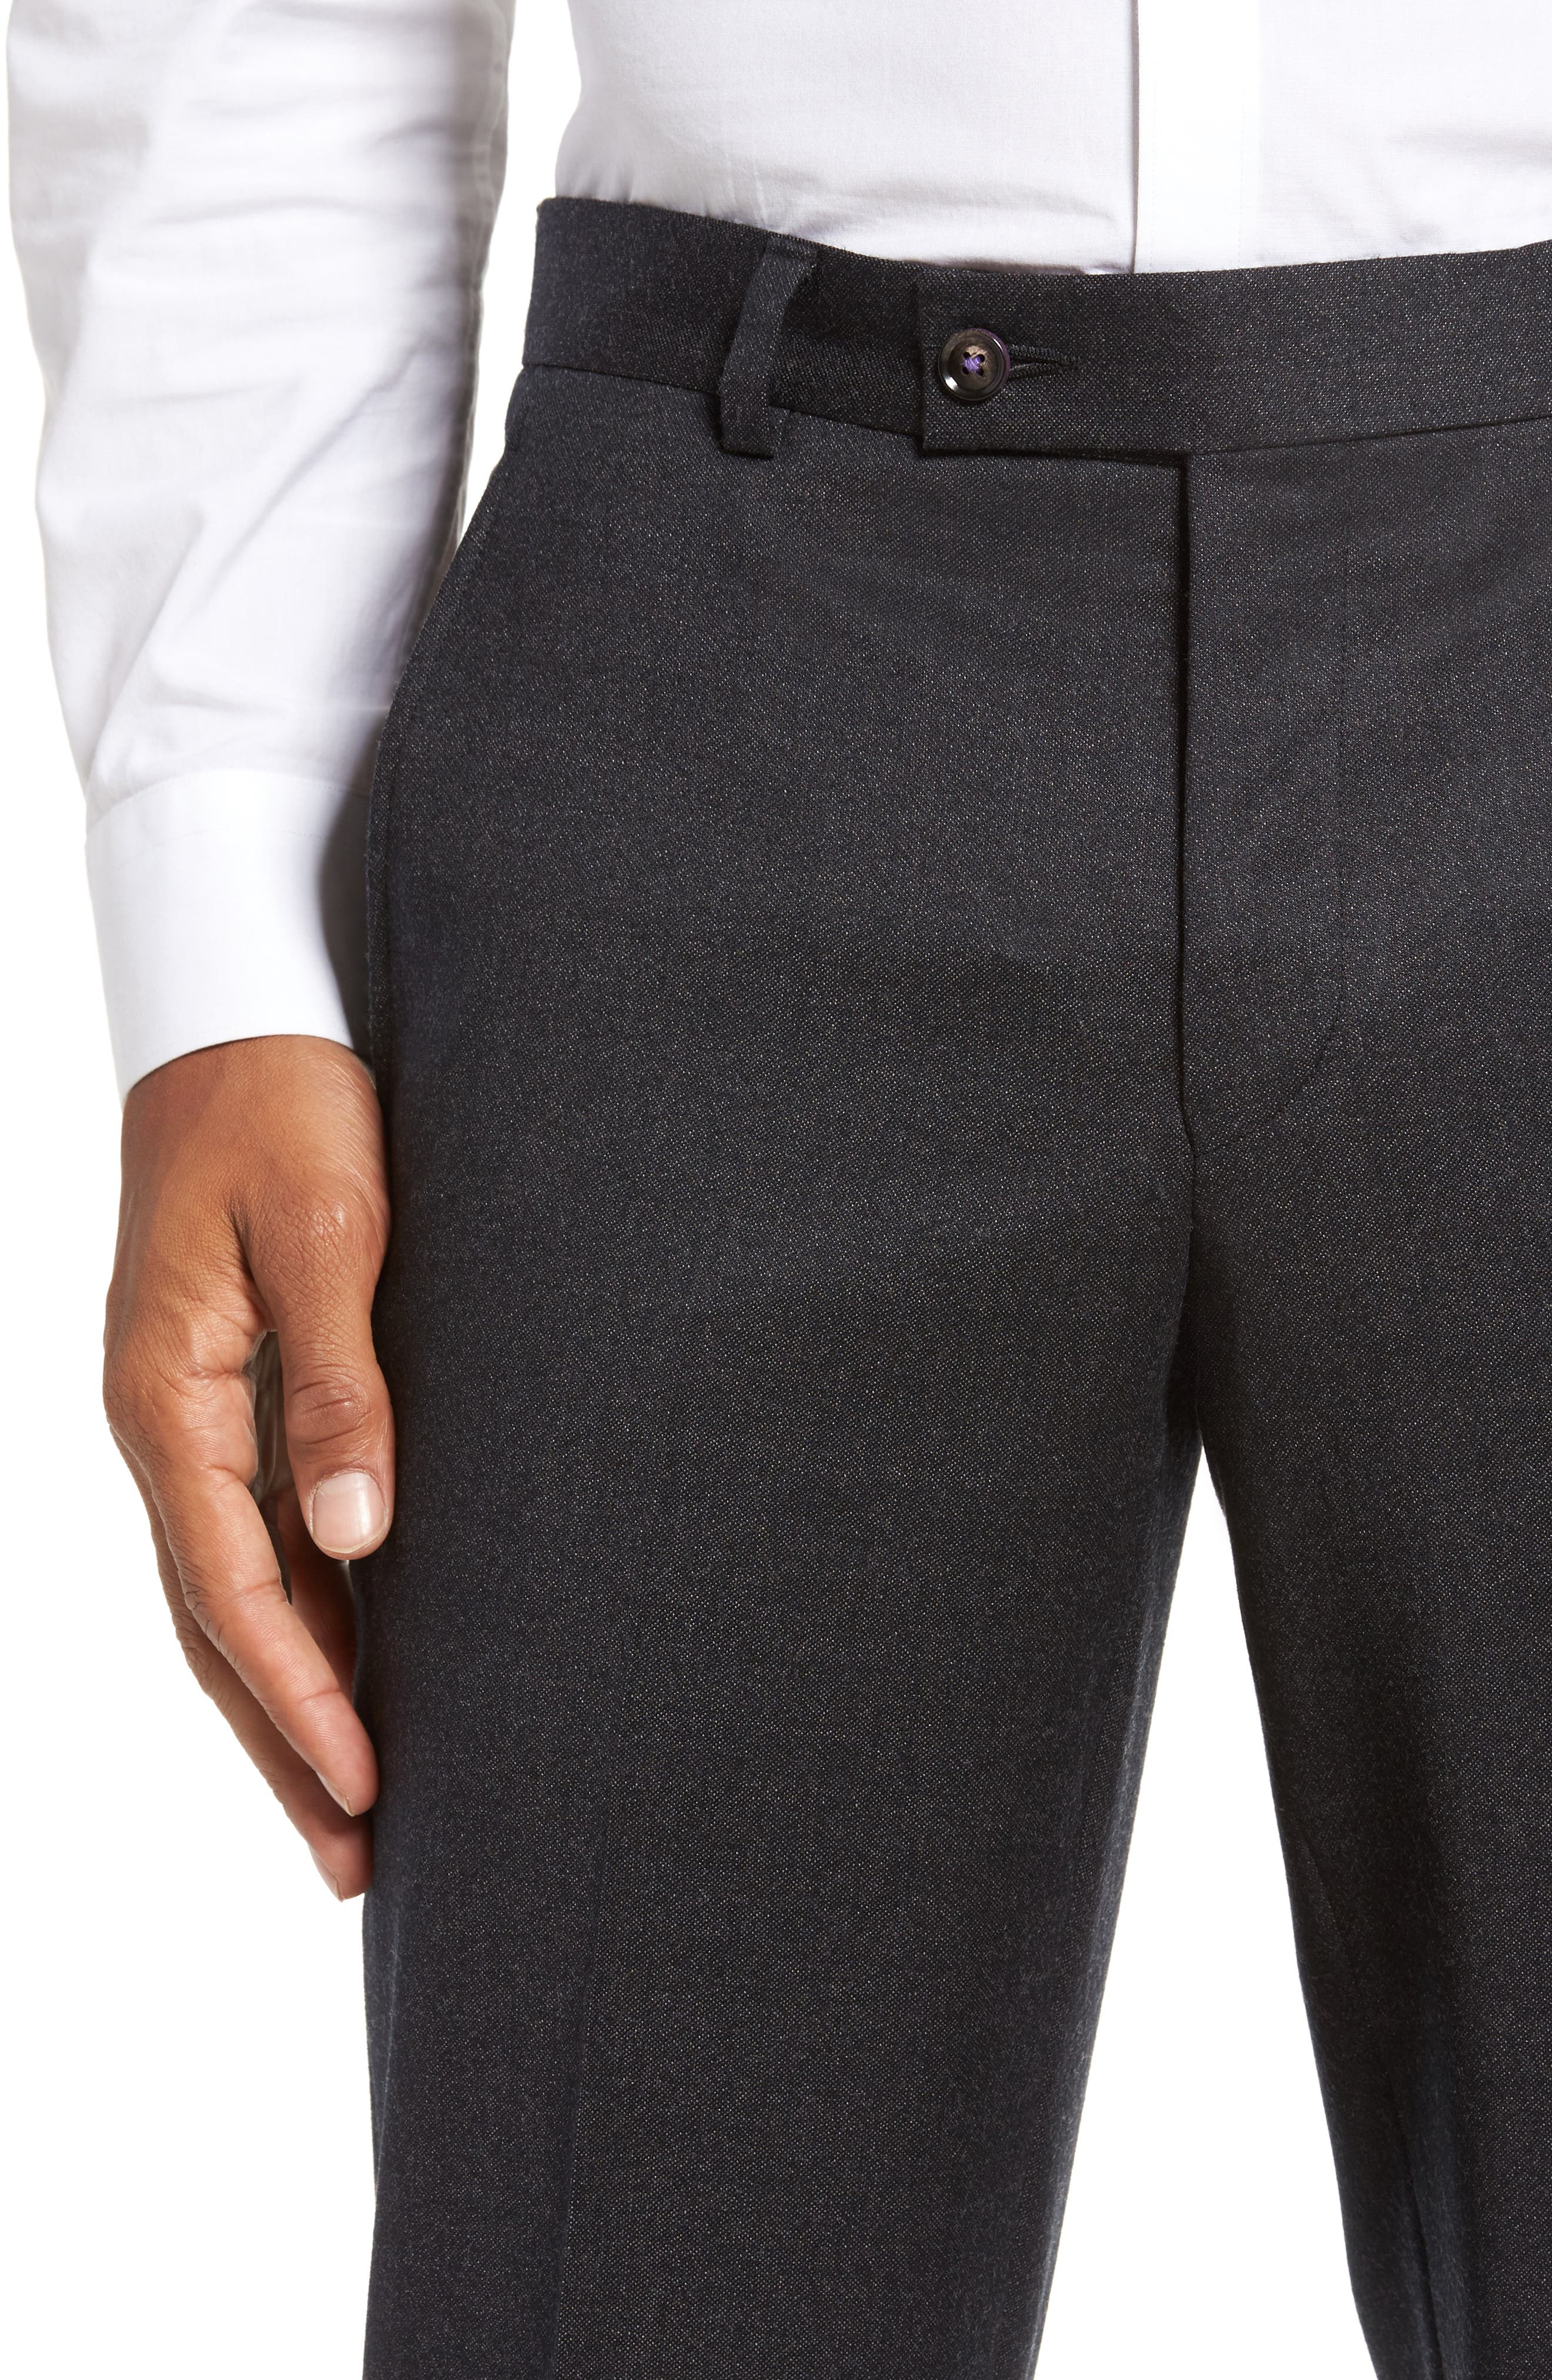 Jeremy Flat Front Solid Wool Trousers,                             Alternate thumbnail 5, color,                             050